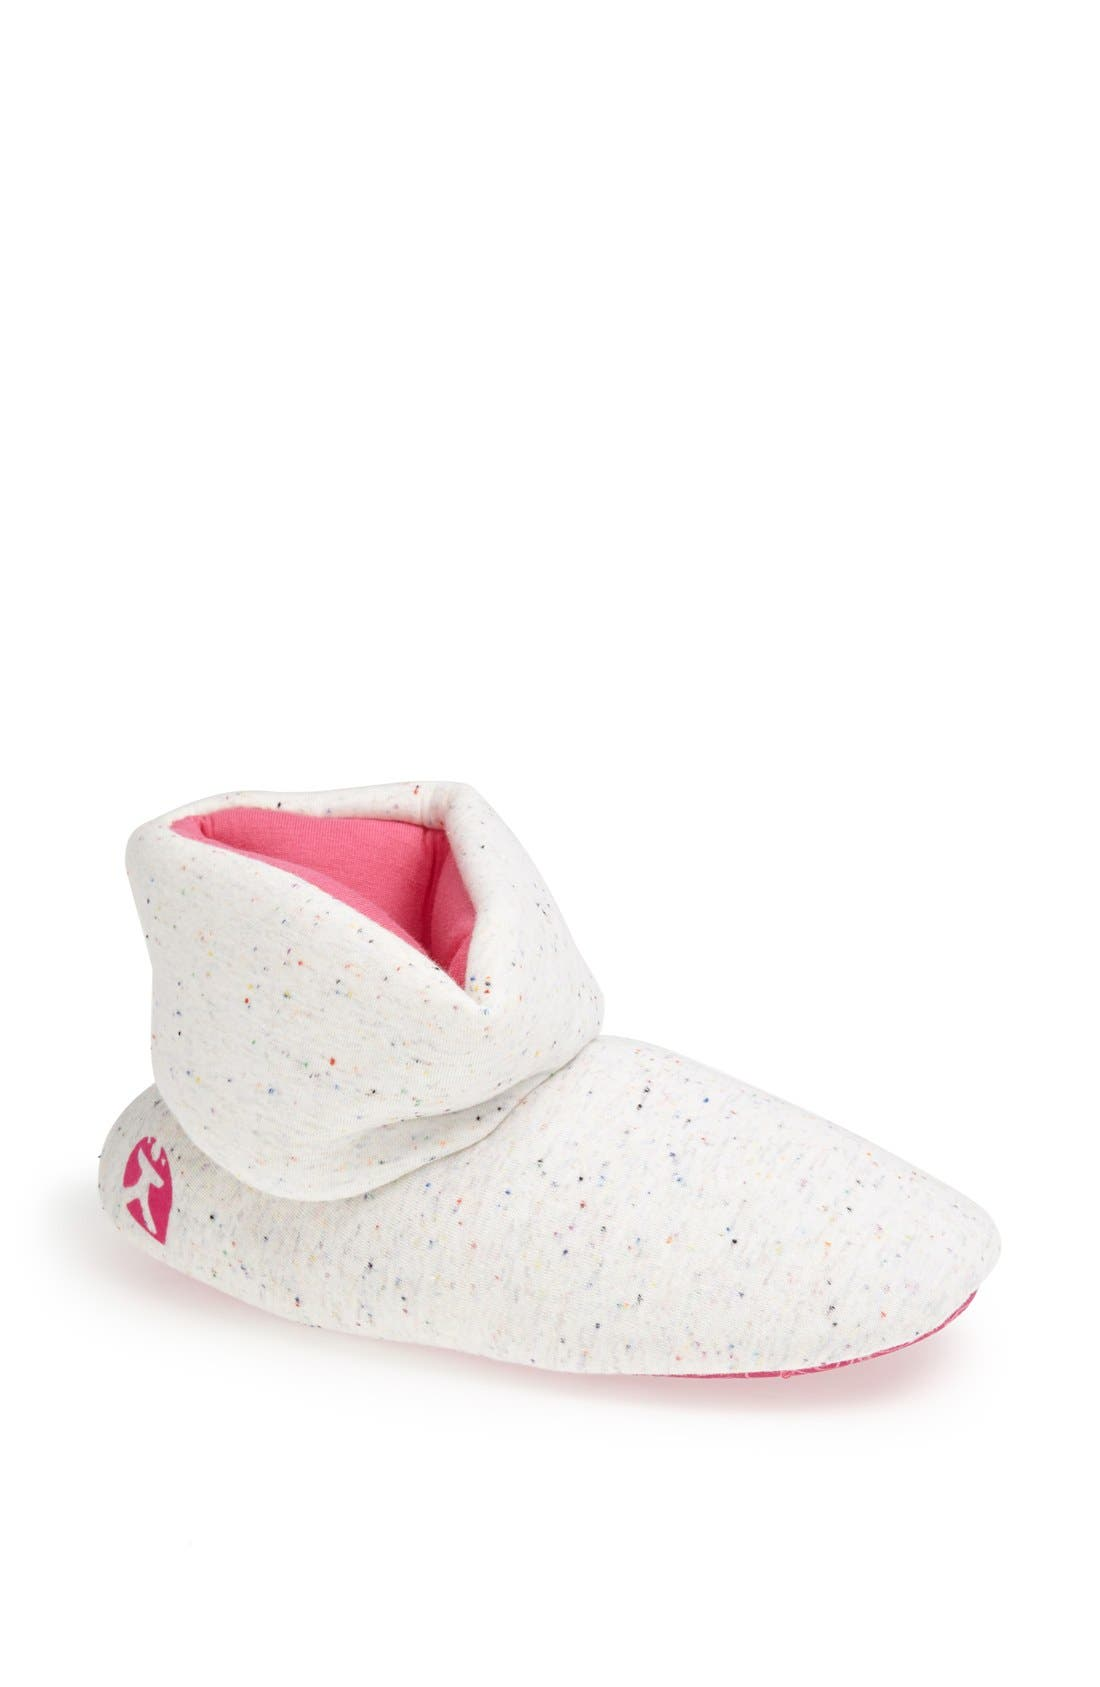 Main Image - Bedroom Athletics 'Avril' Bootie Slipper